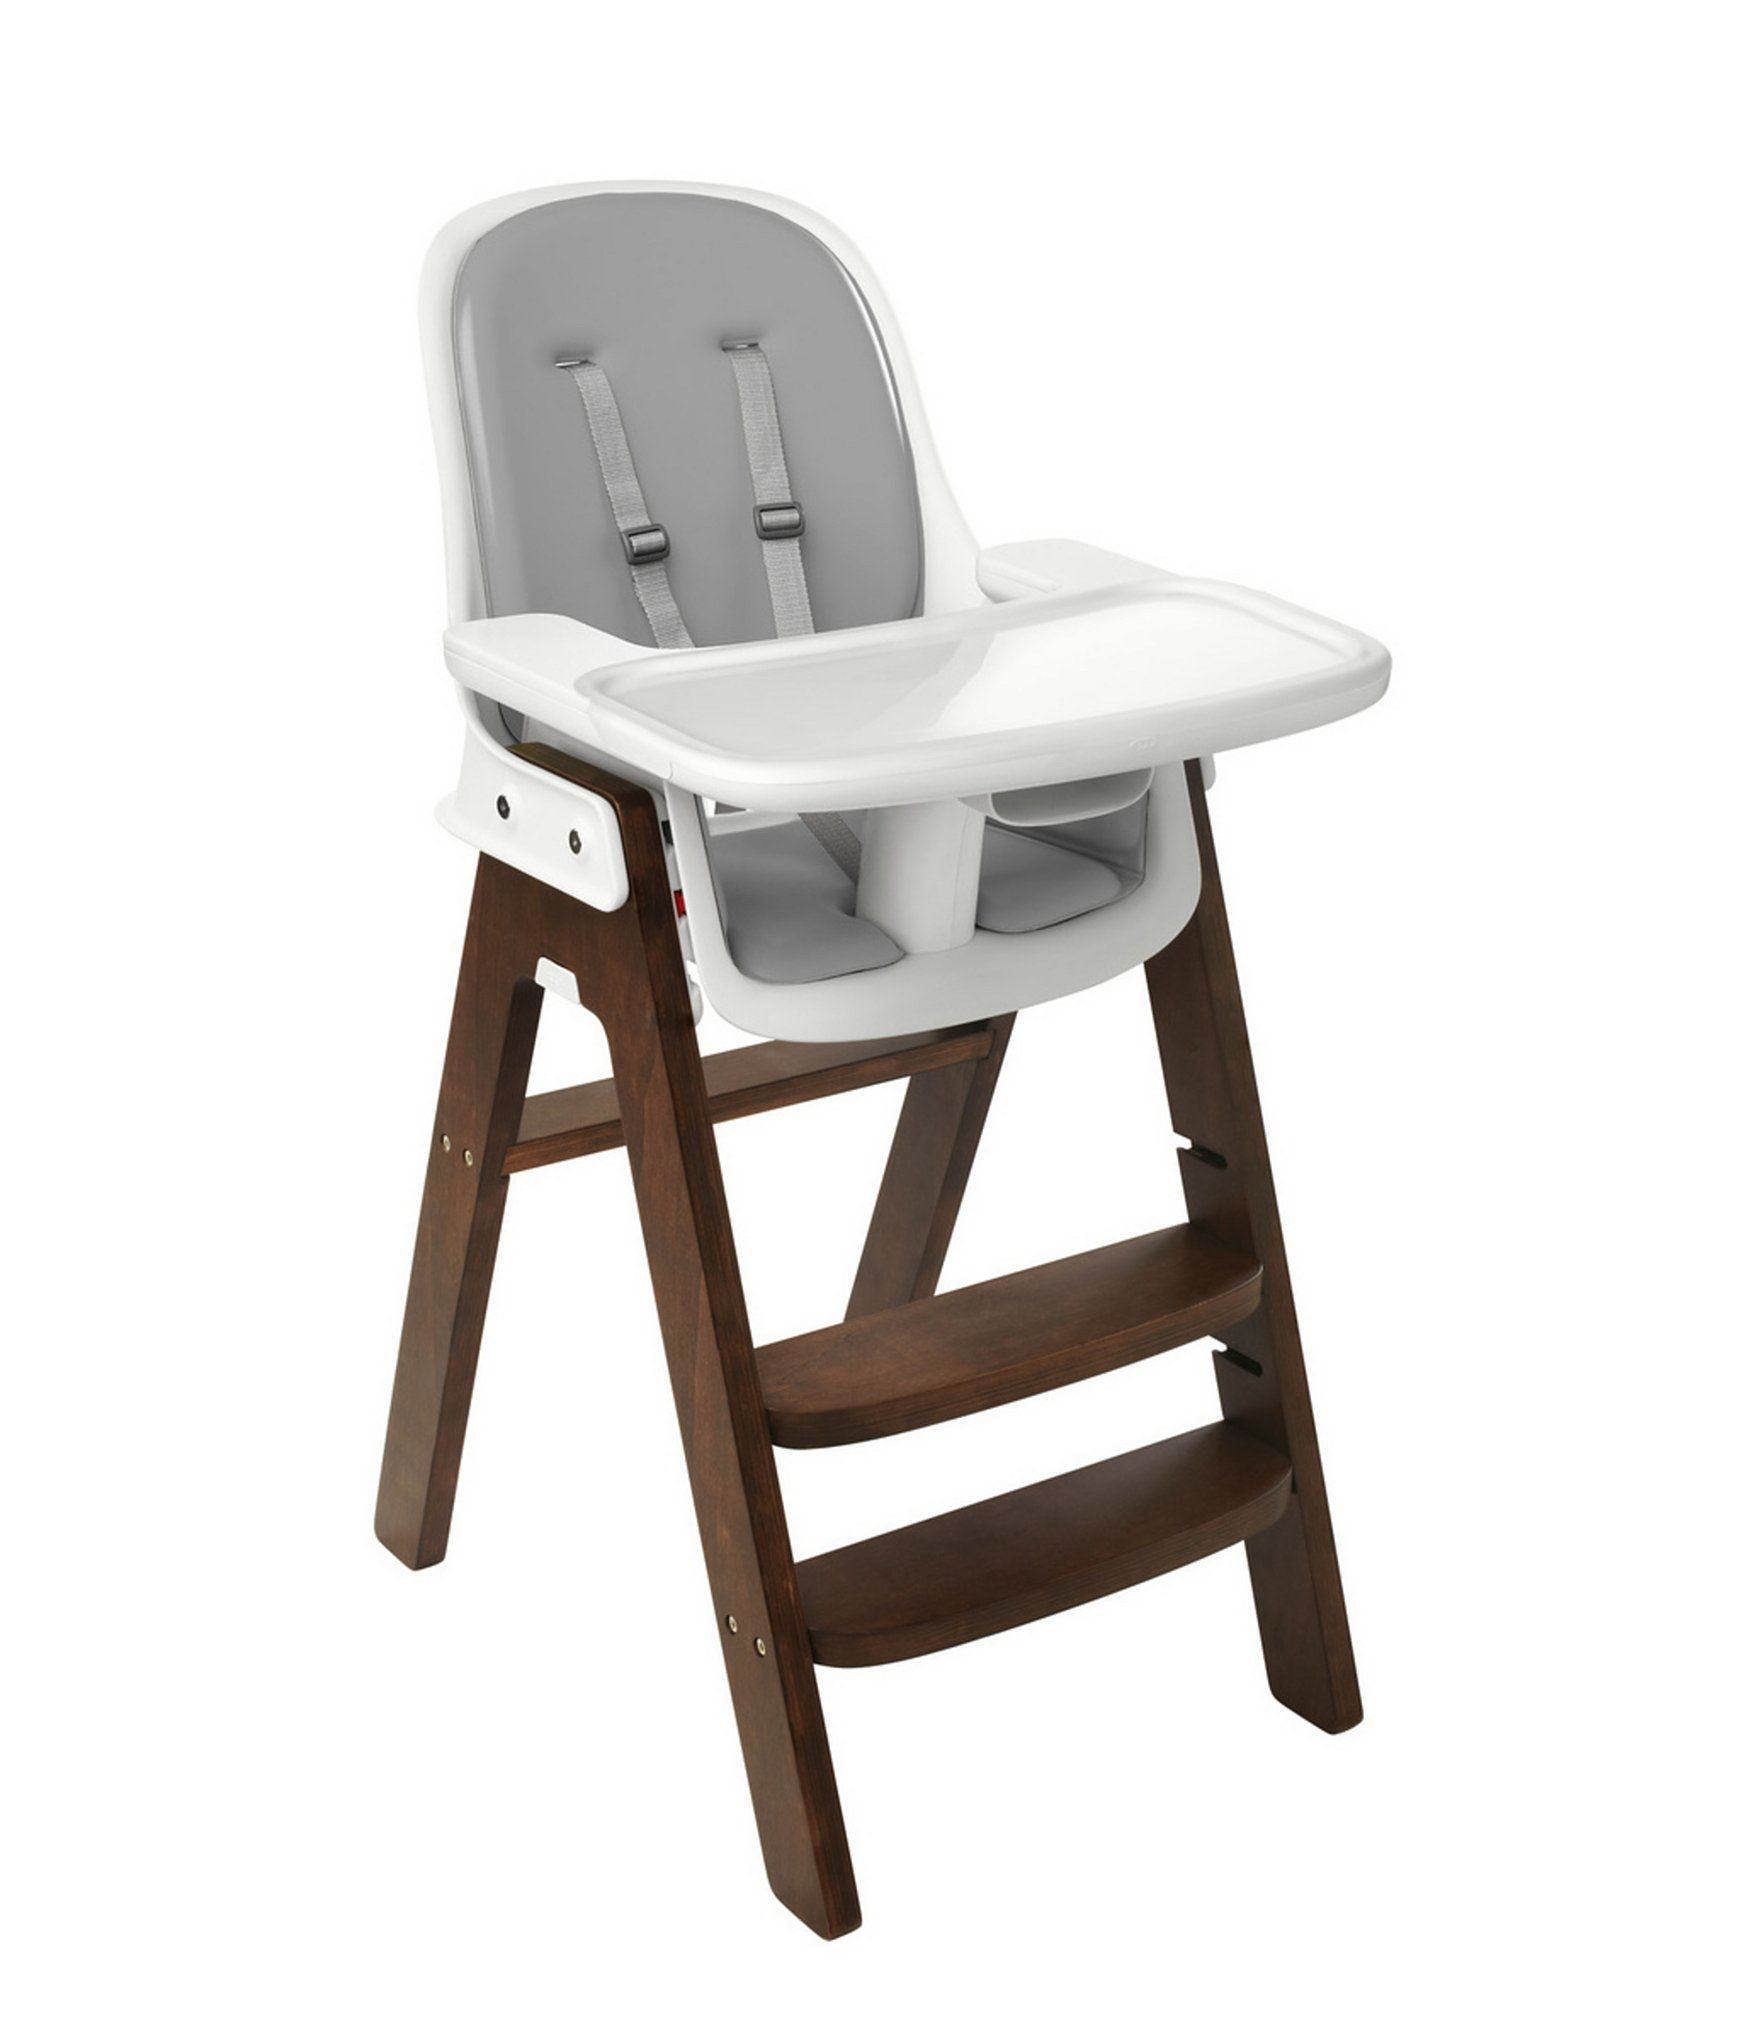 Oxo Sprout High Chair In 2020 Wood High Chairs Cool Chairs Cute Desk Chair